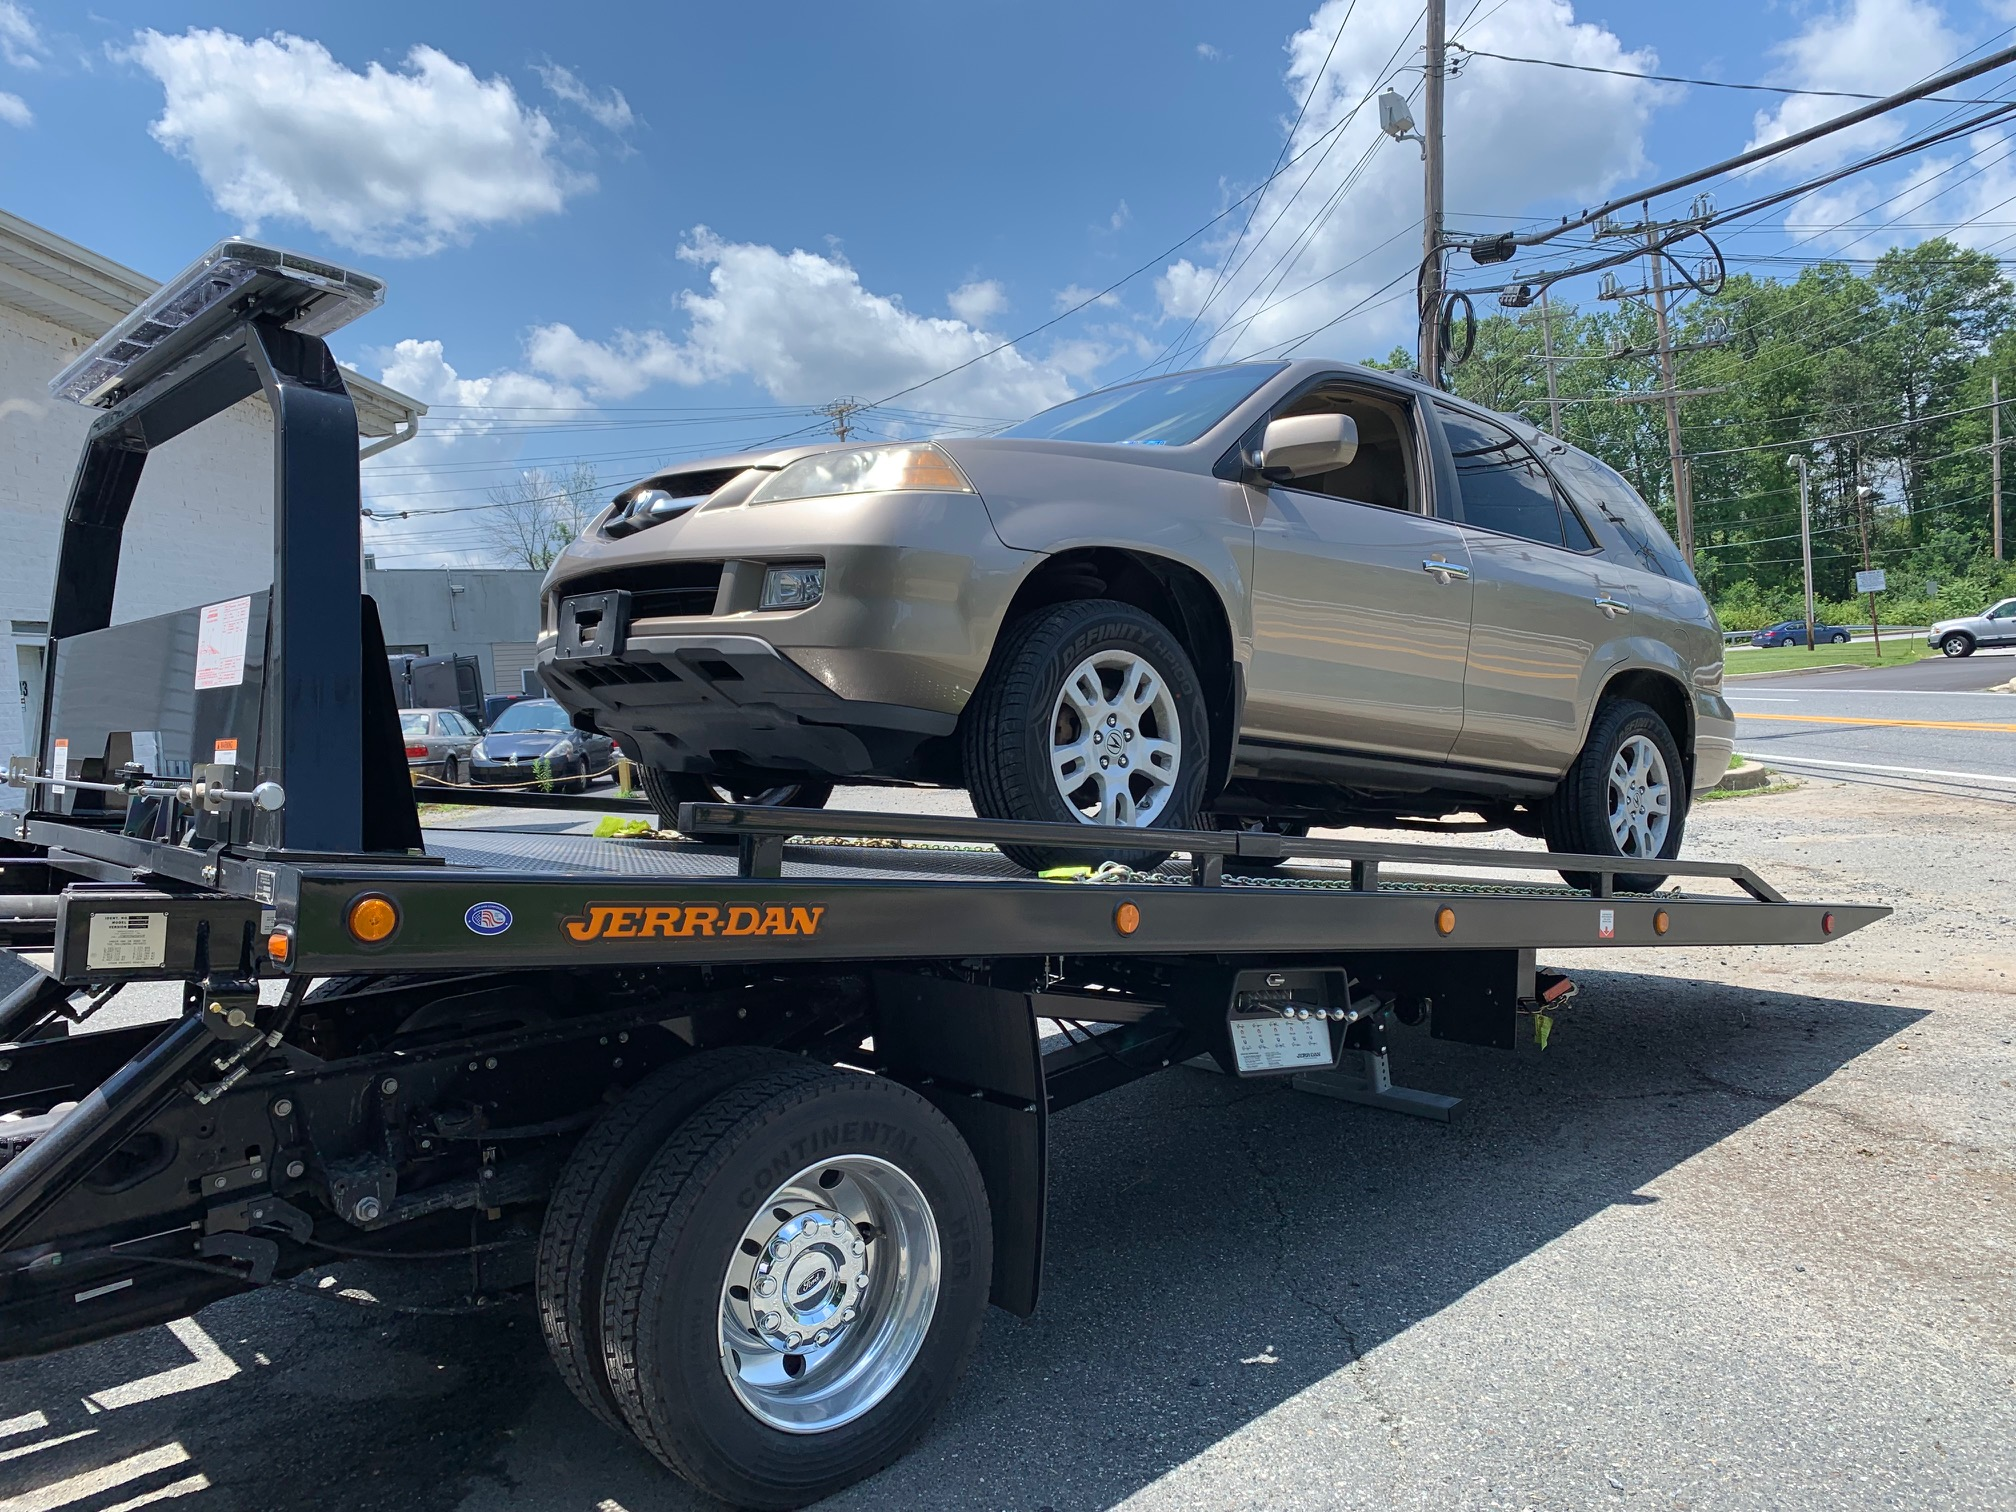 baltimore towing service